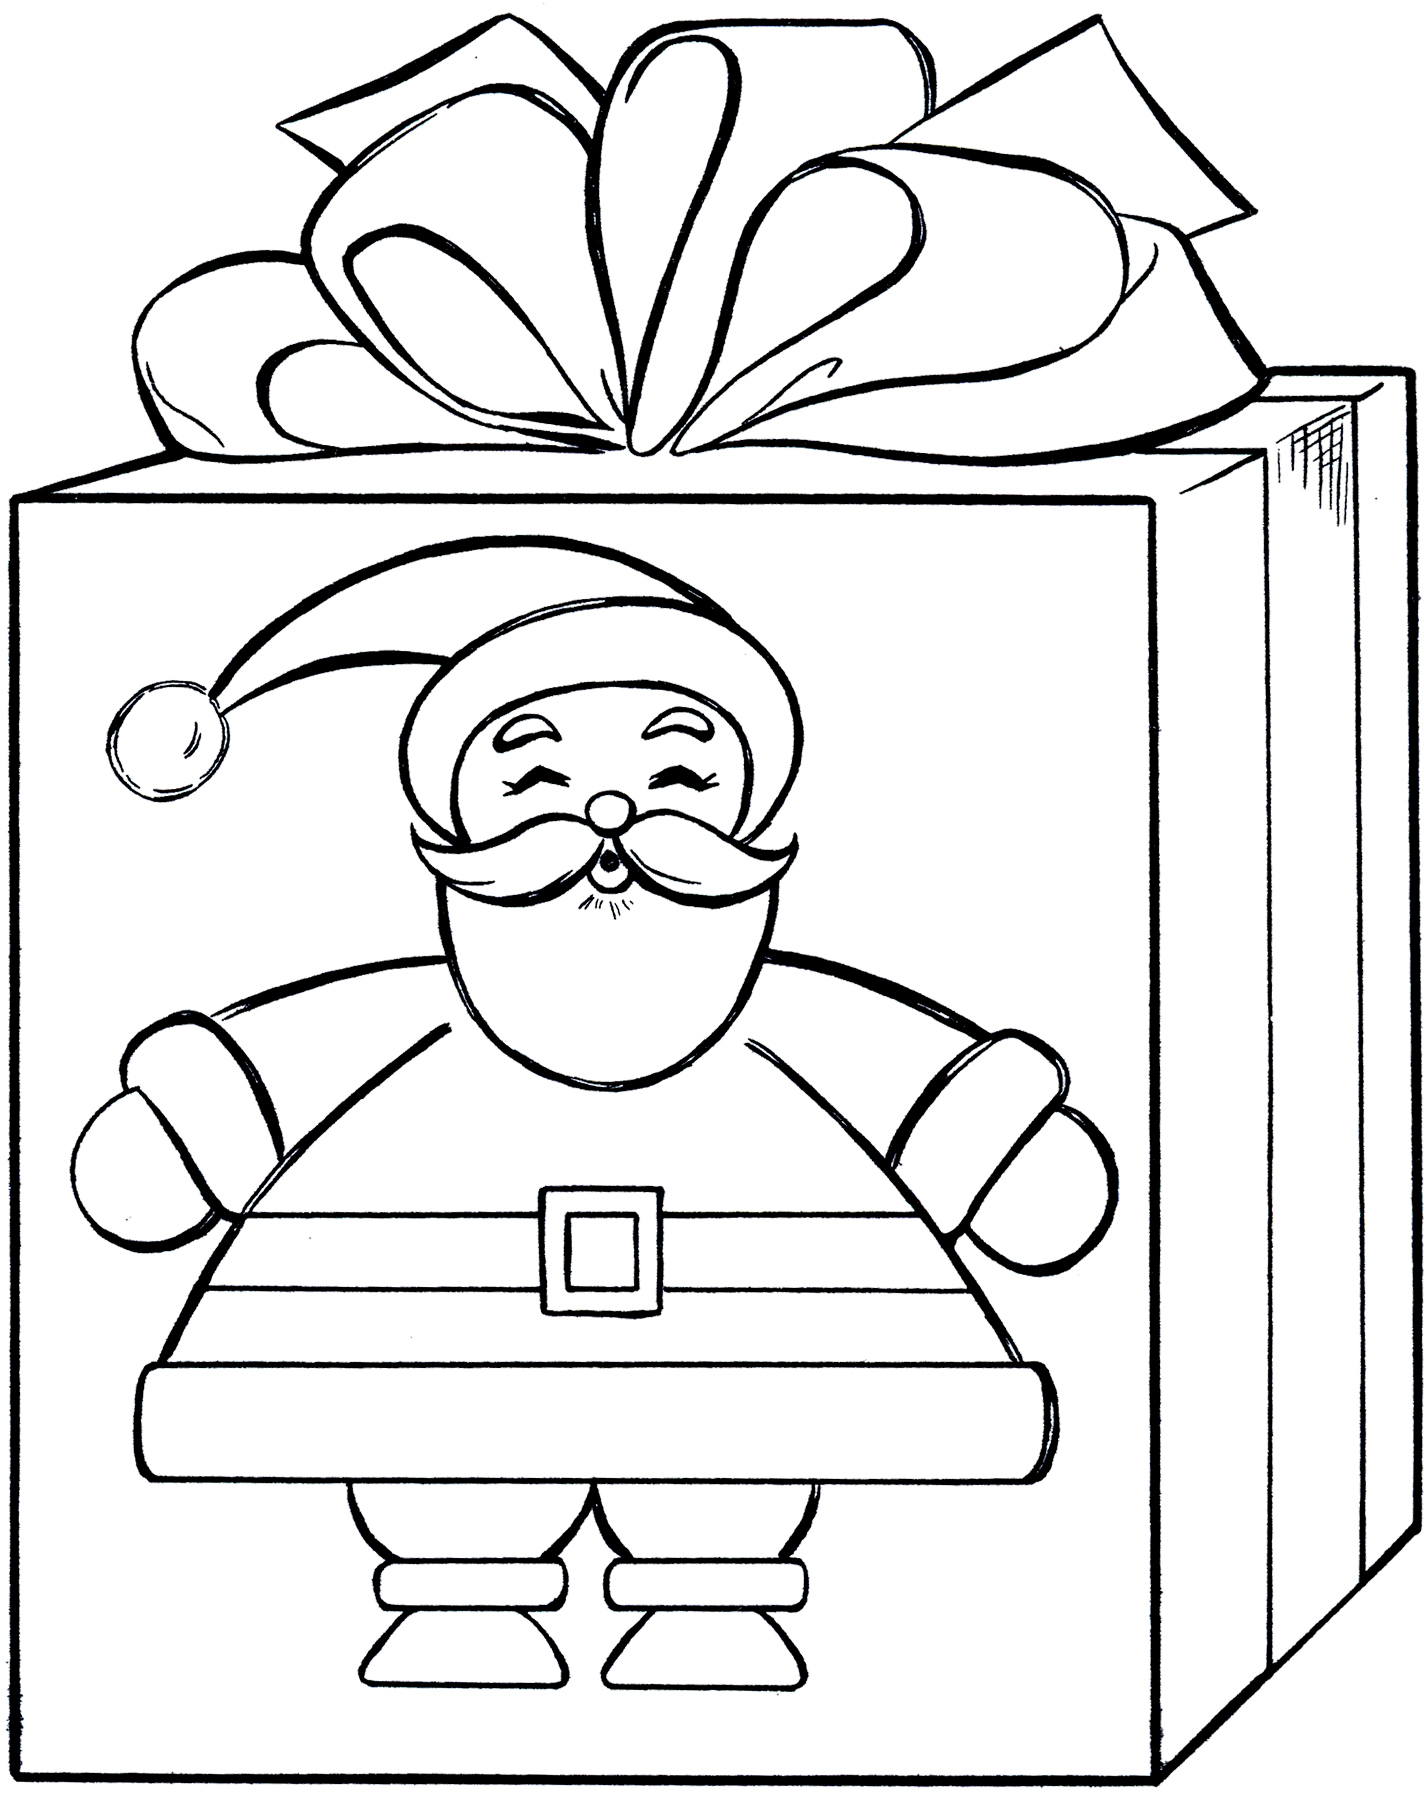 Santa Gift Coloring Page Cute The Graphics Fairy Coloring Pages Gifts